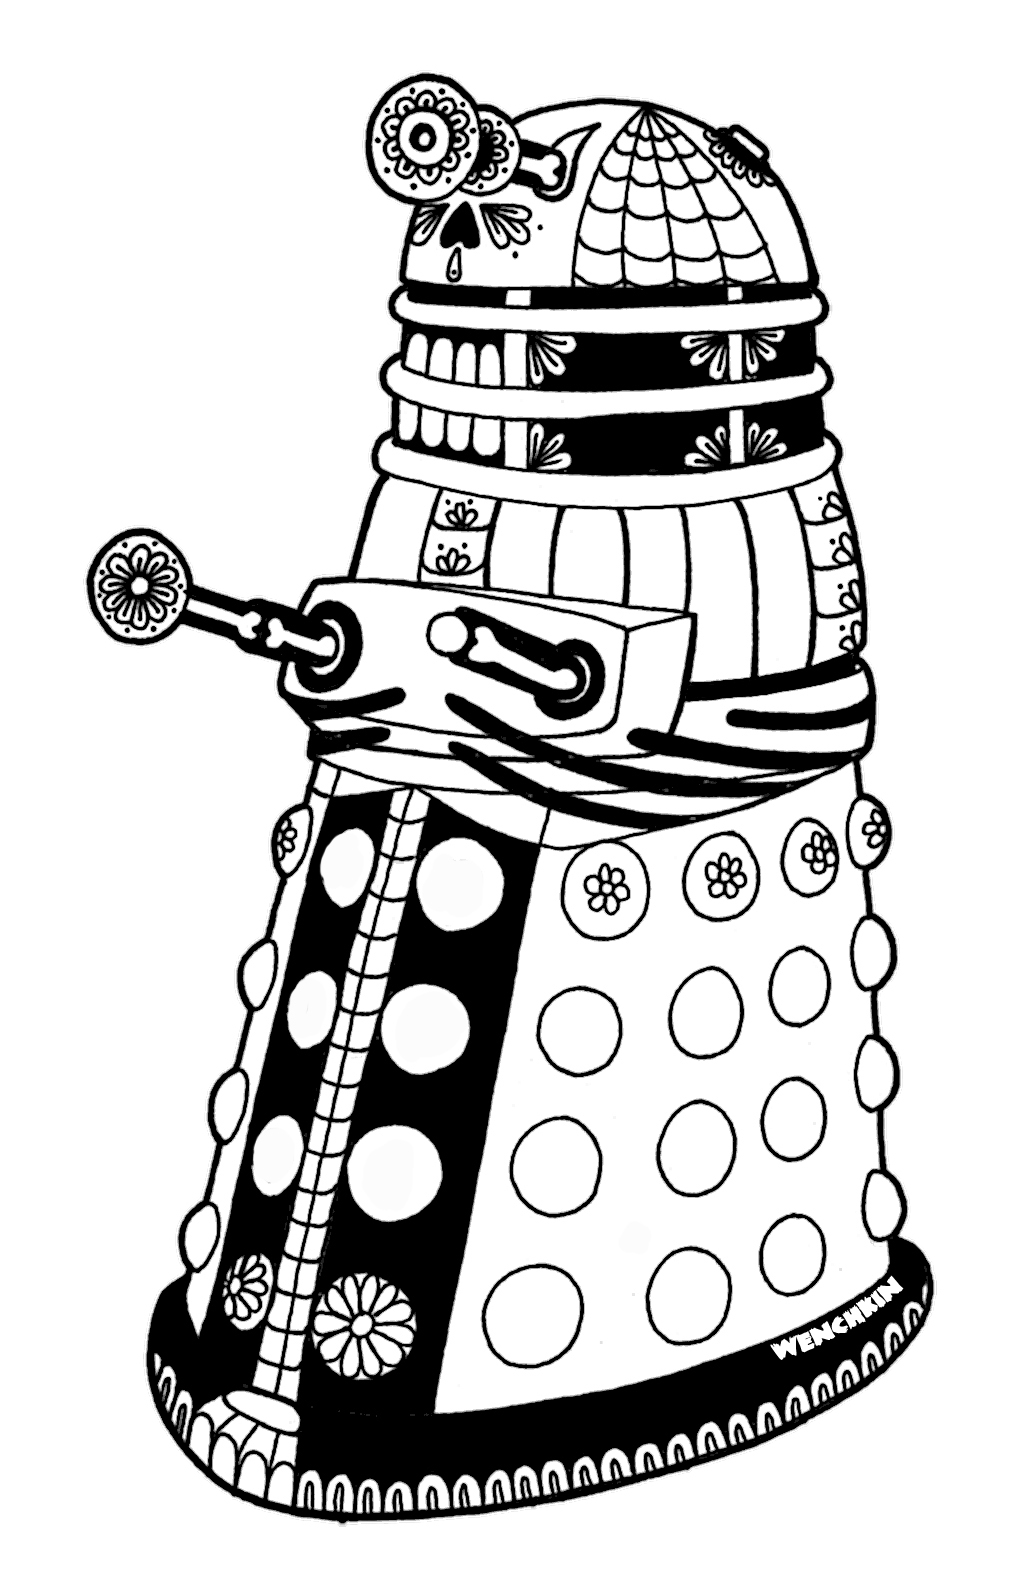 dalek pictures to colour dalek xd coloring pages pinterest dalek pictures colour to